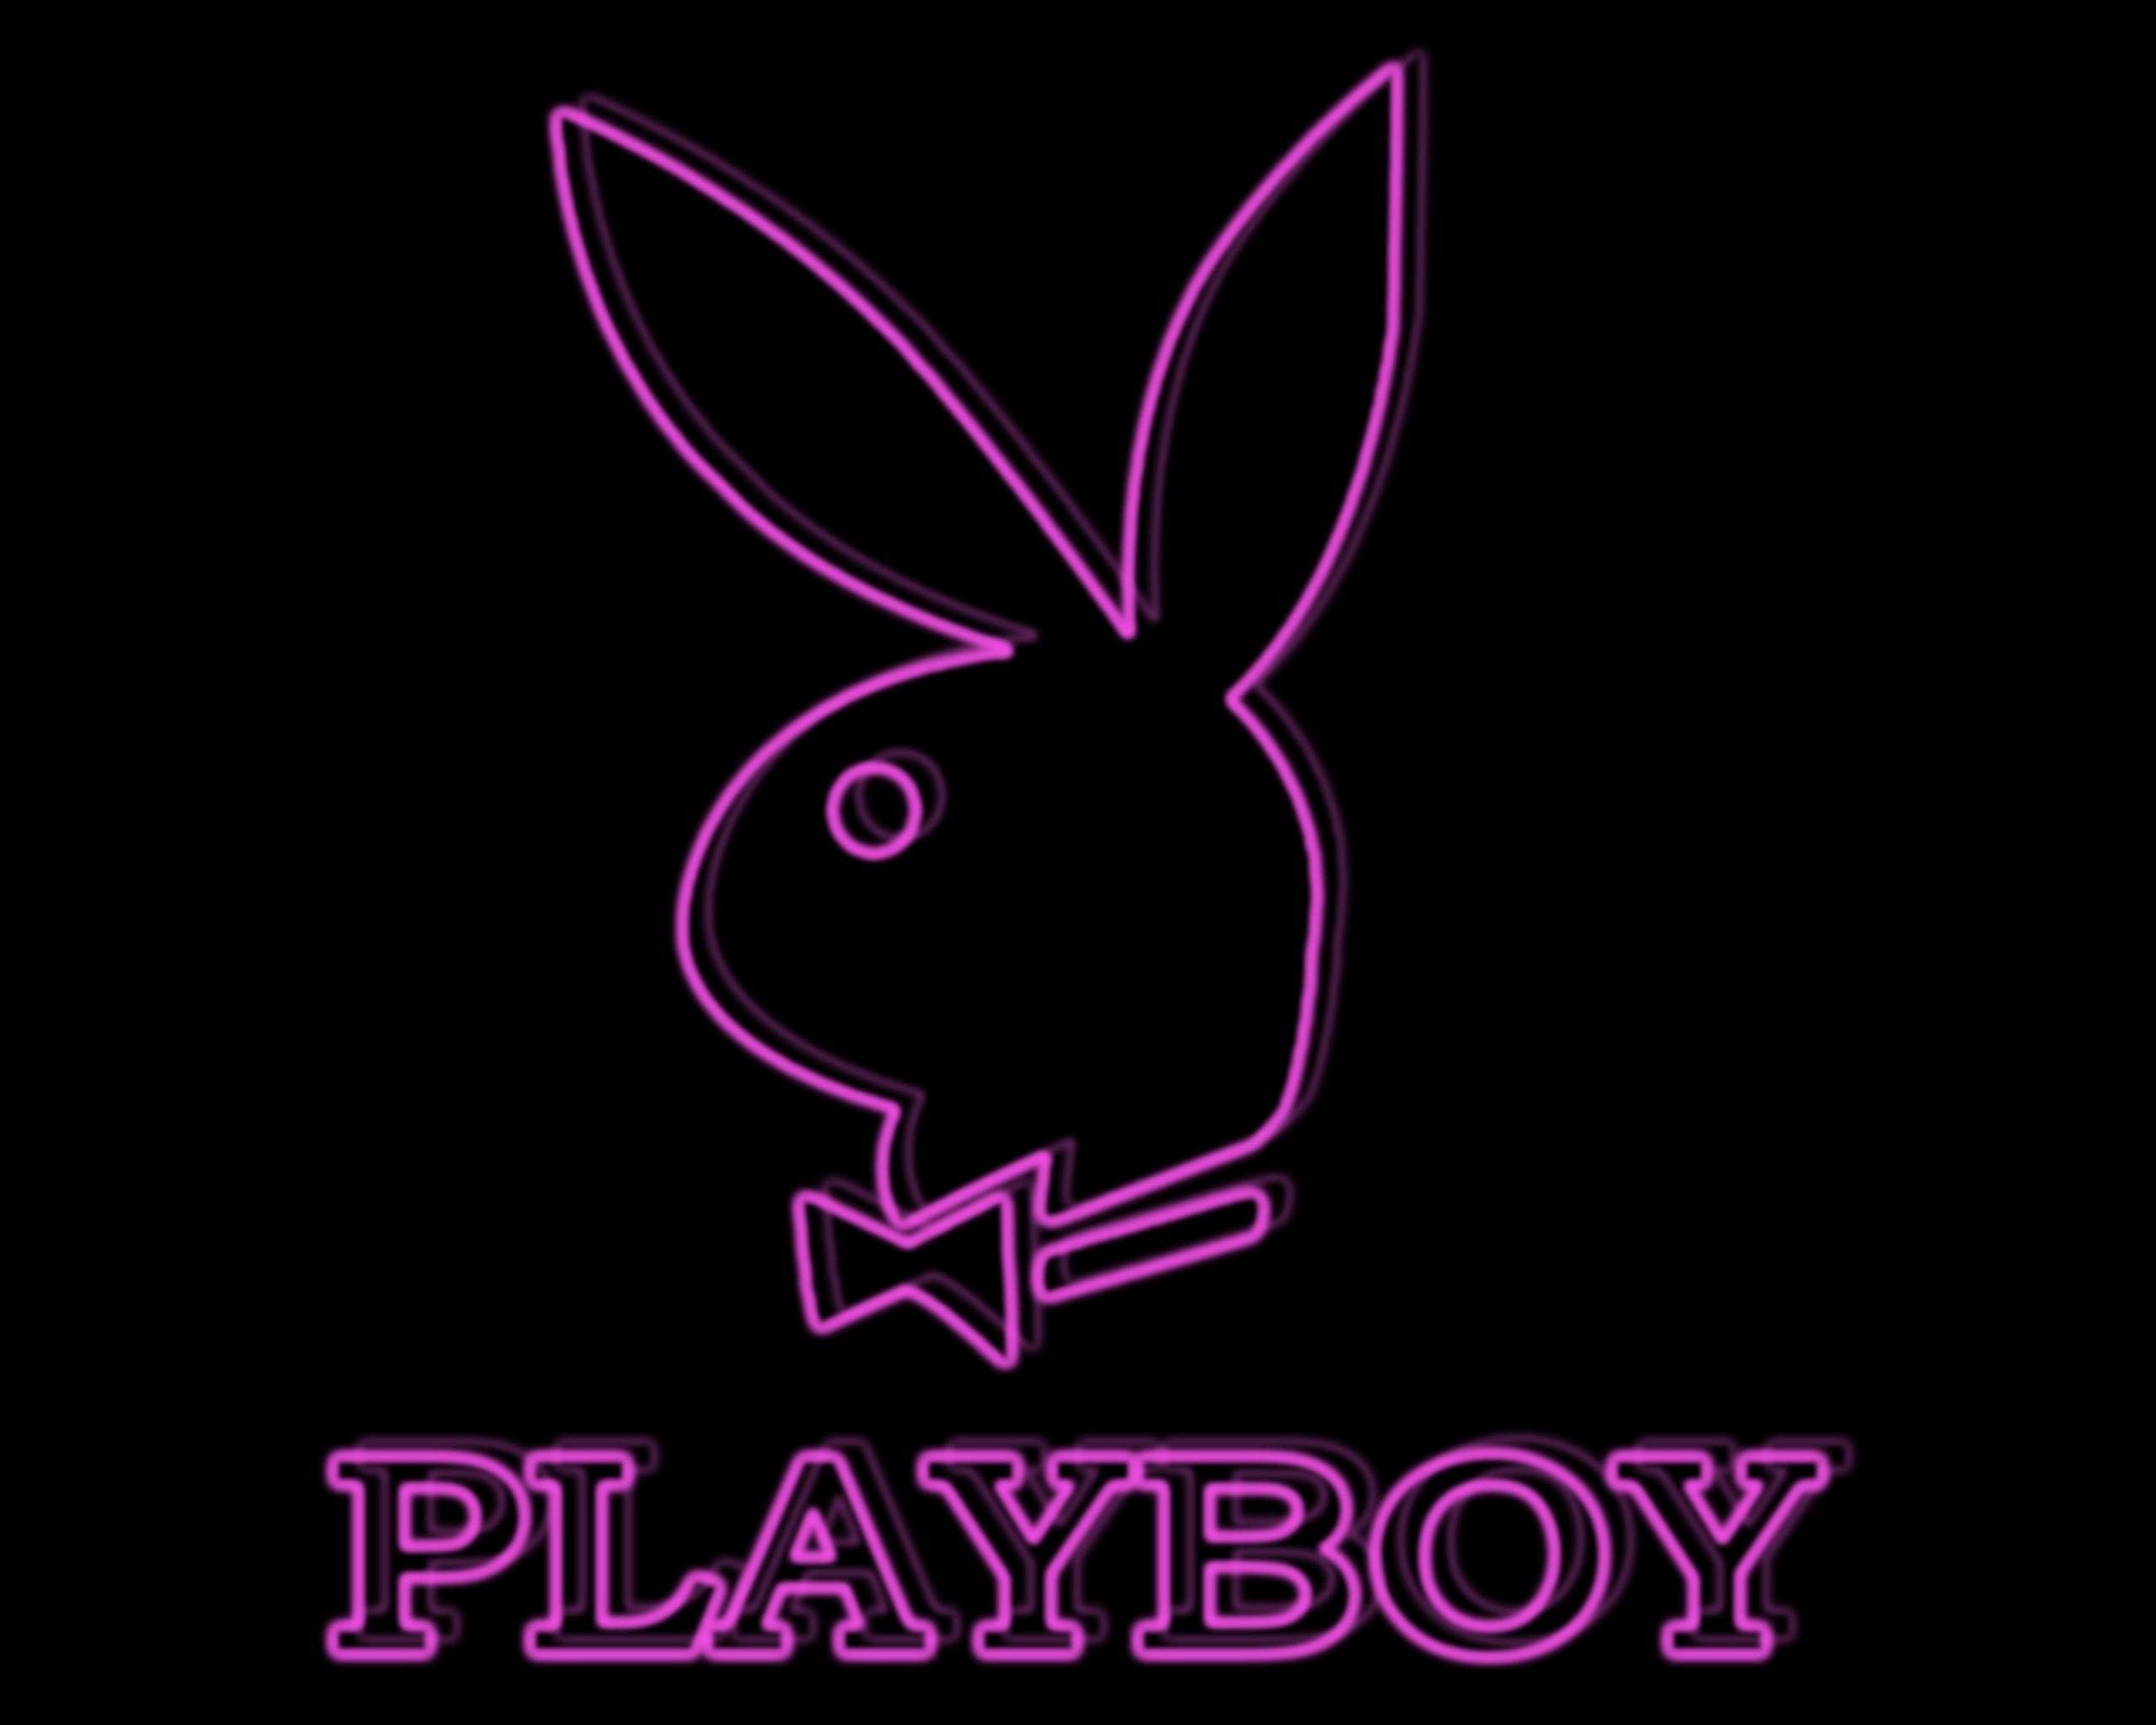 Tags: adult - logo - playboy - poster: www.wallpaperup.com/318974/PLAYBOY_adult_logo_poster_(1).html